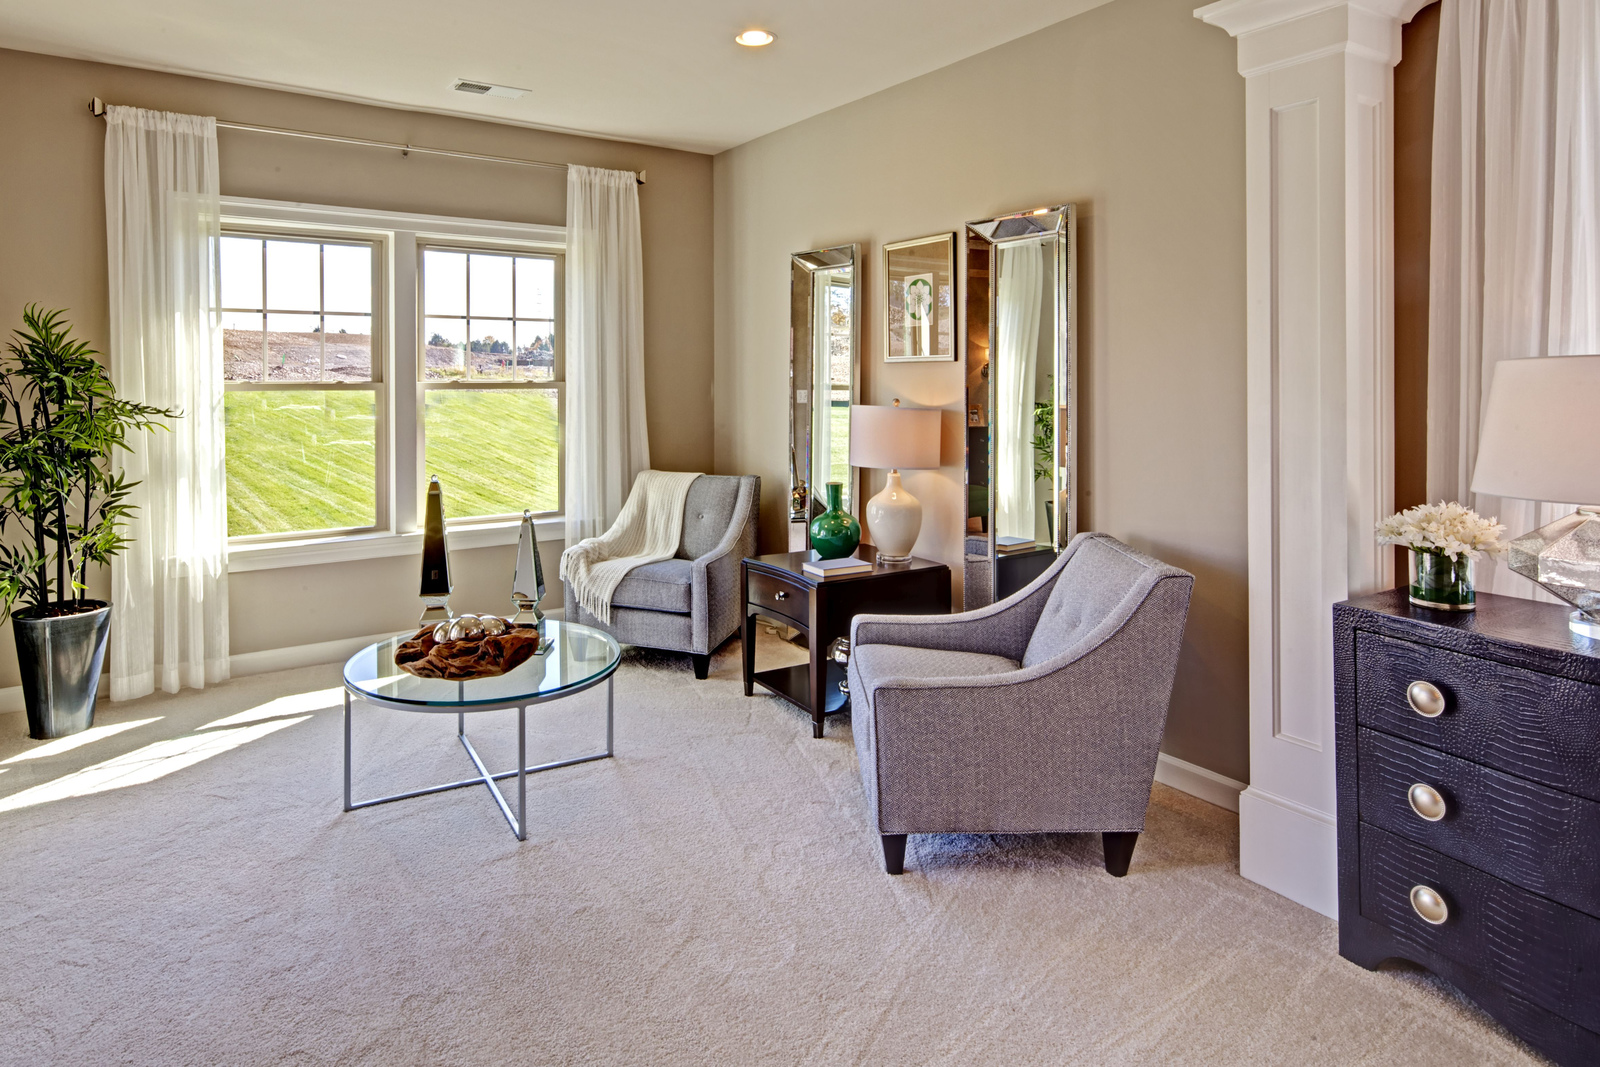 Your Master Suite can come with a large Sitting Room for added space.